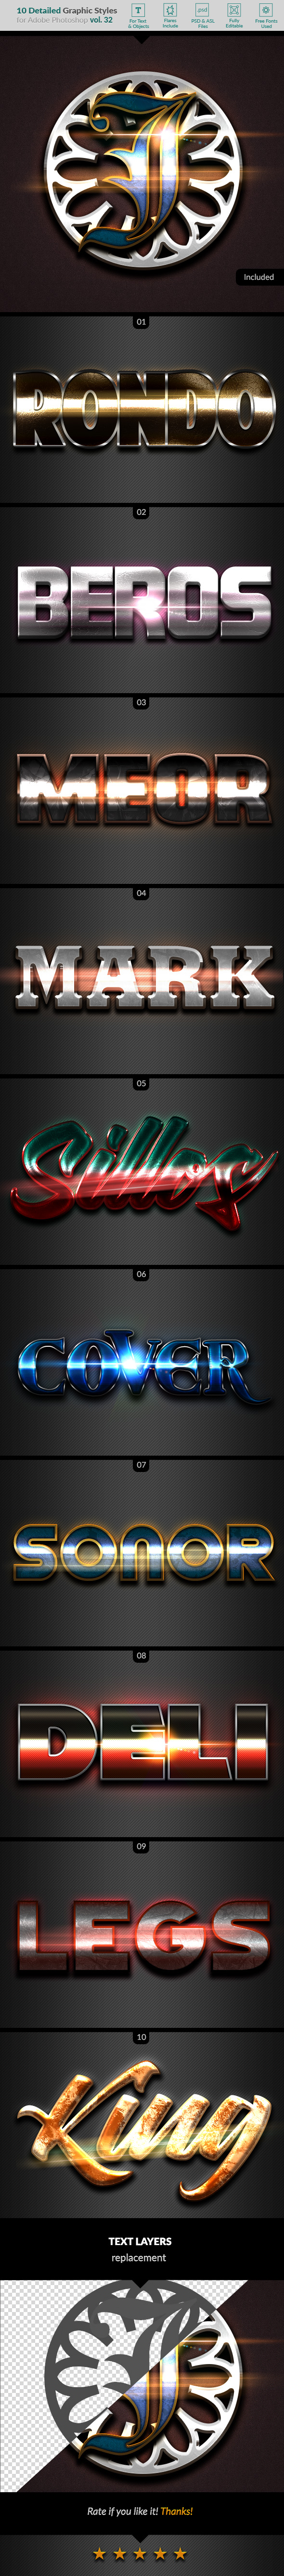 10 Text Effects Vol. 32